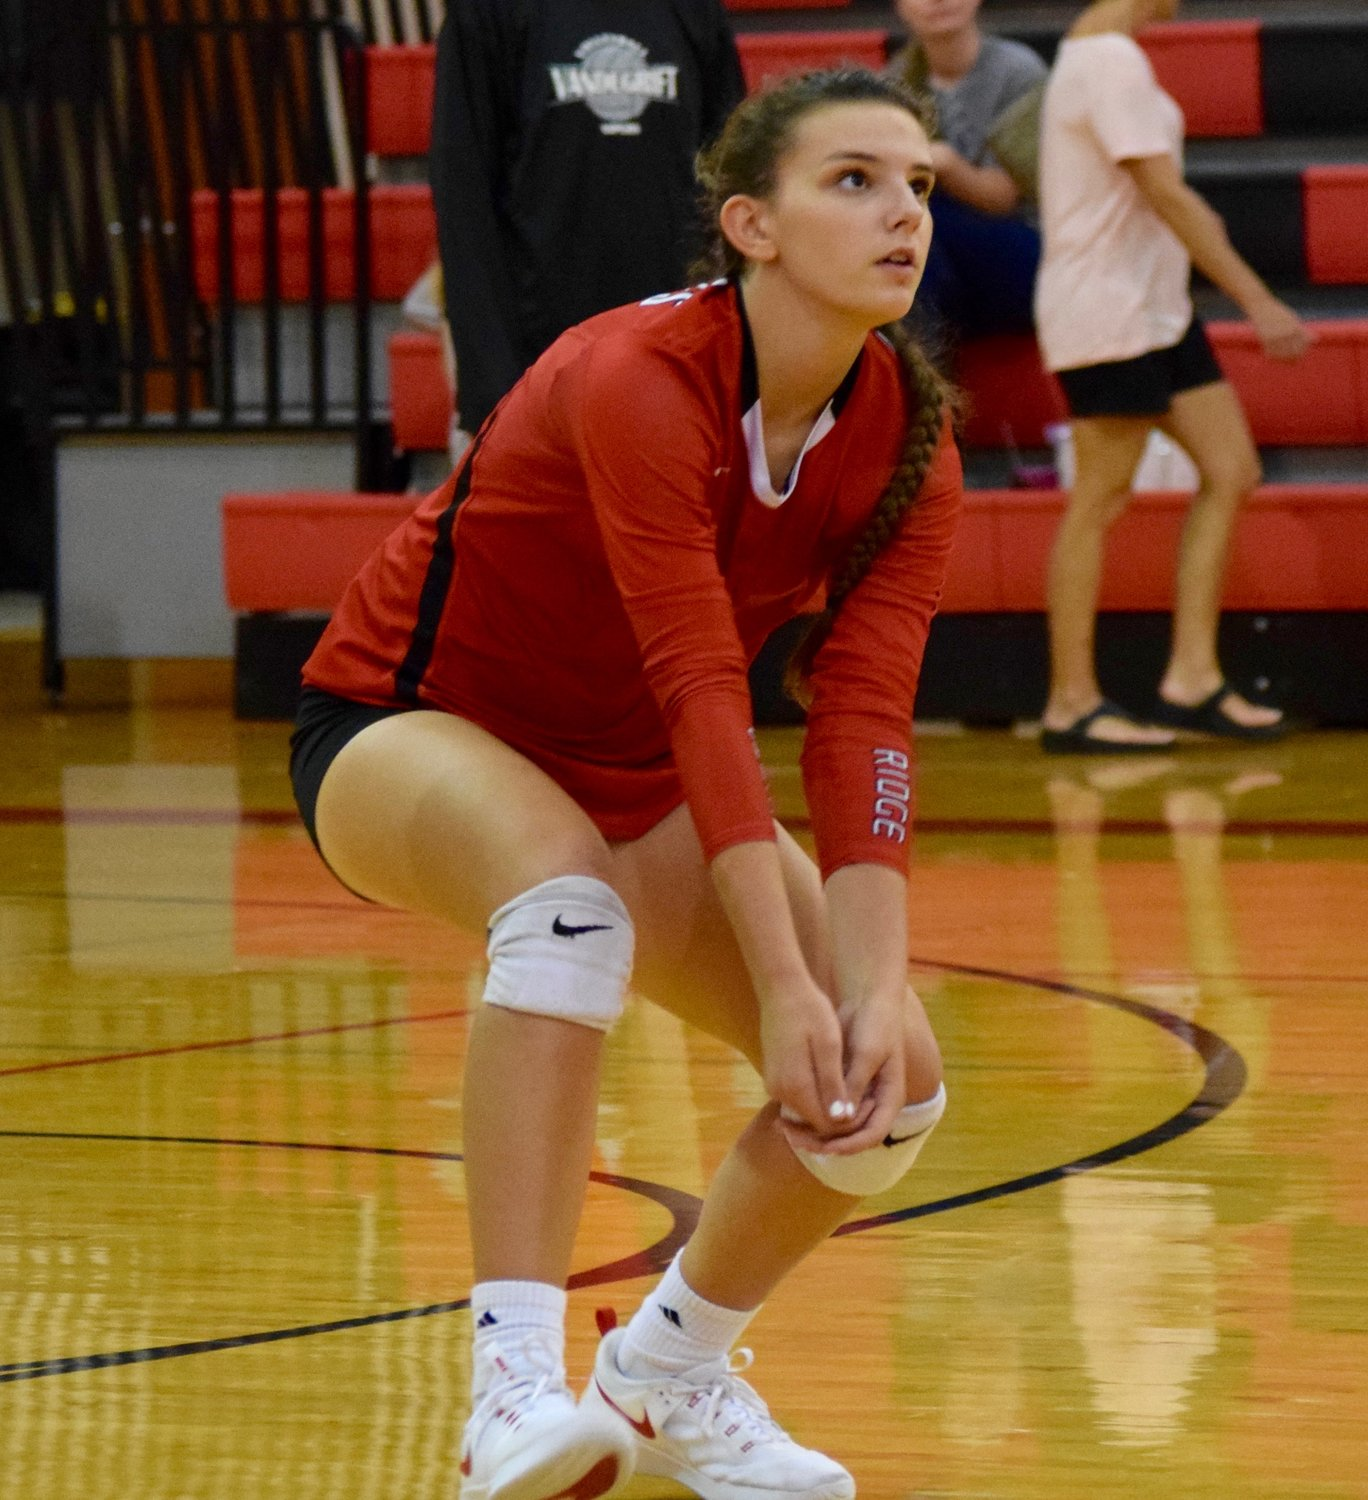 Vista Ridge sophomore Geneva Nedrow was the Newcomer of the Year in District 13-6A after leading the team with 615 digs.